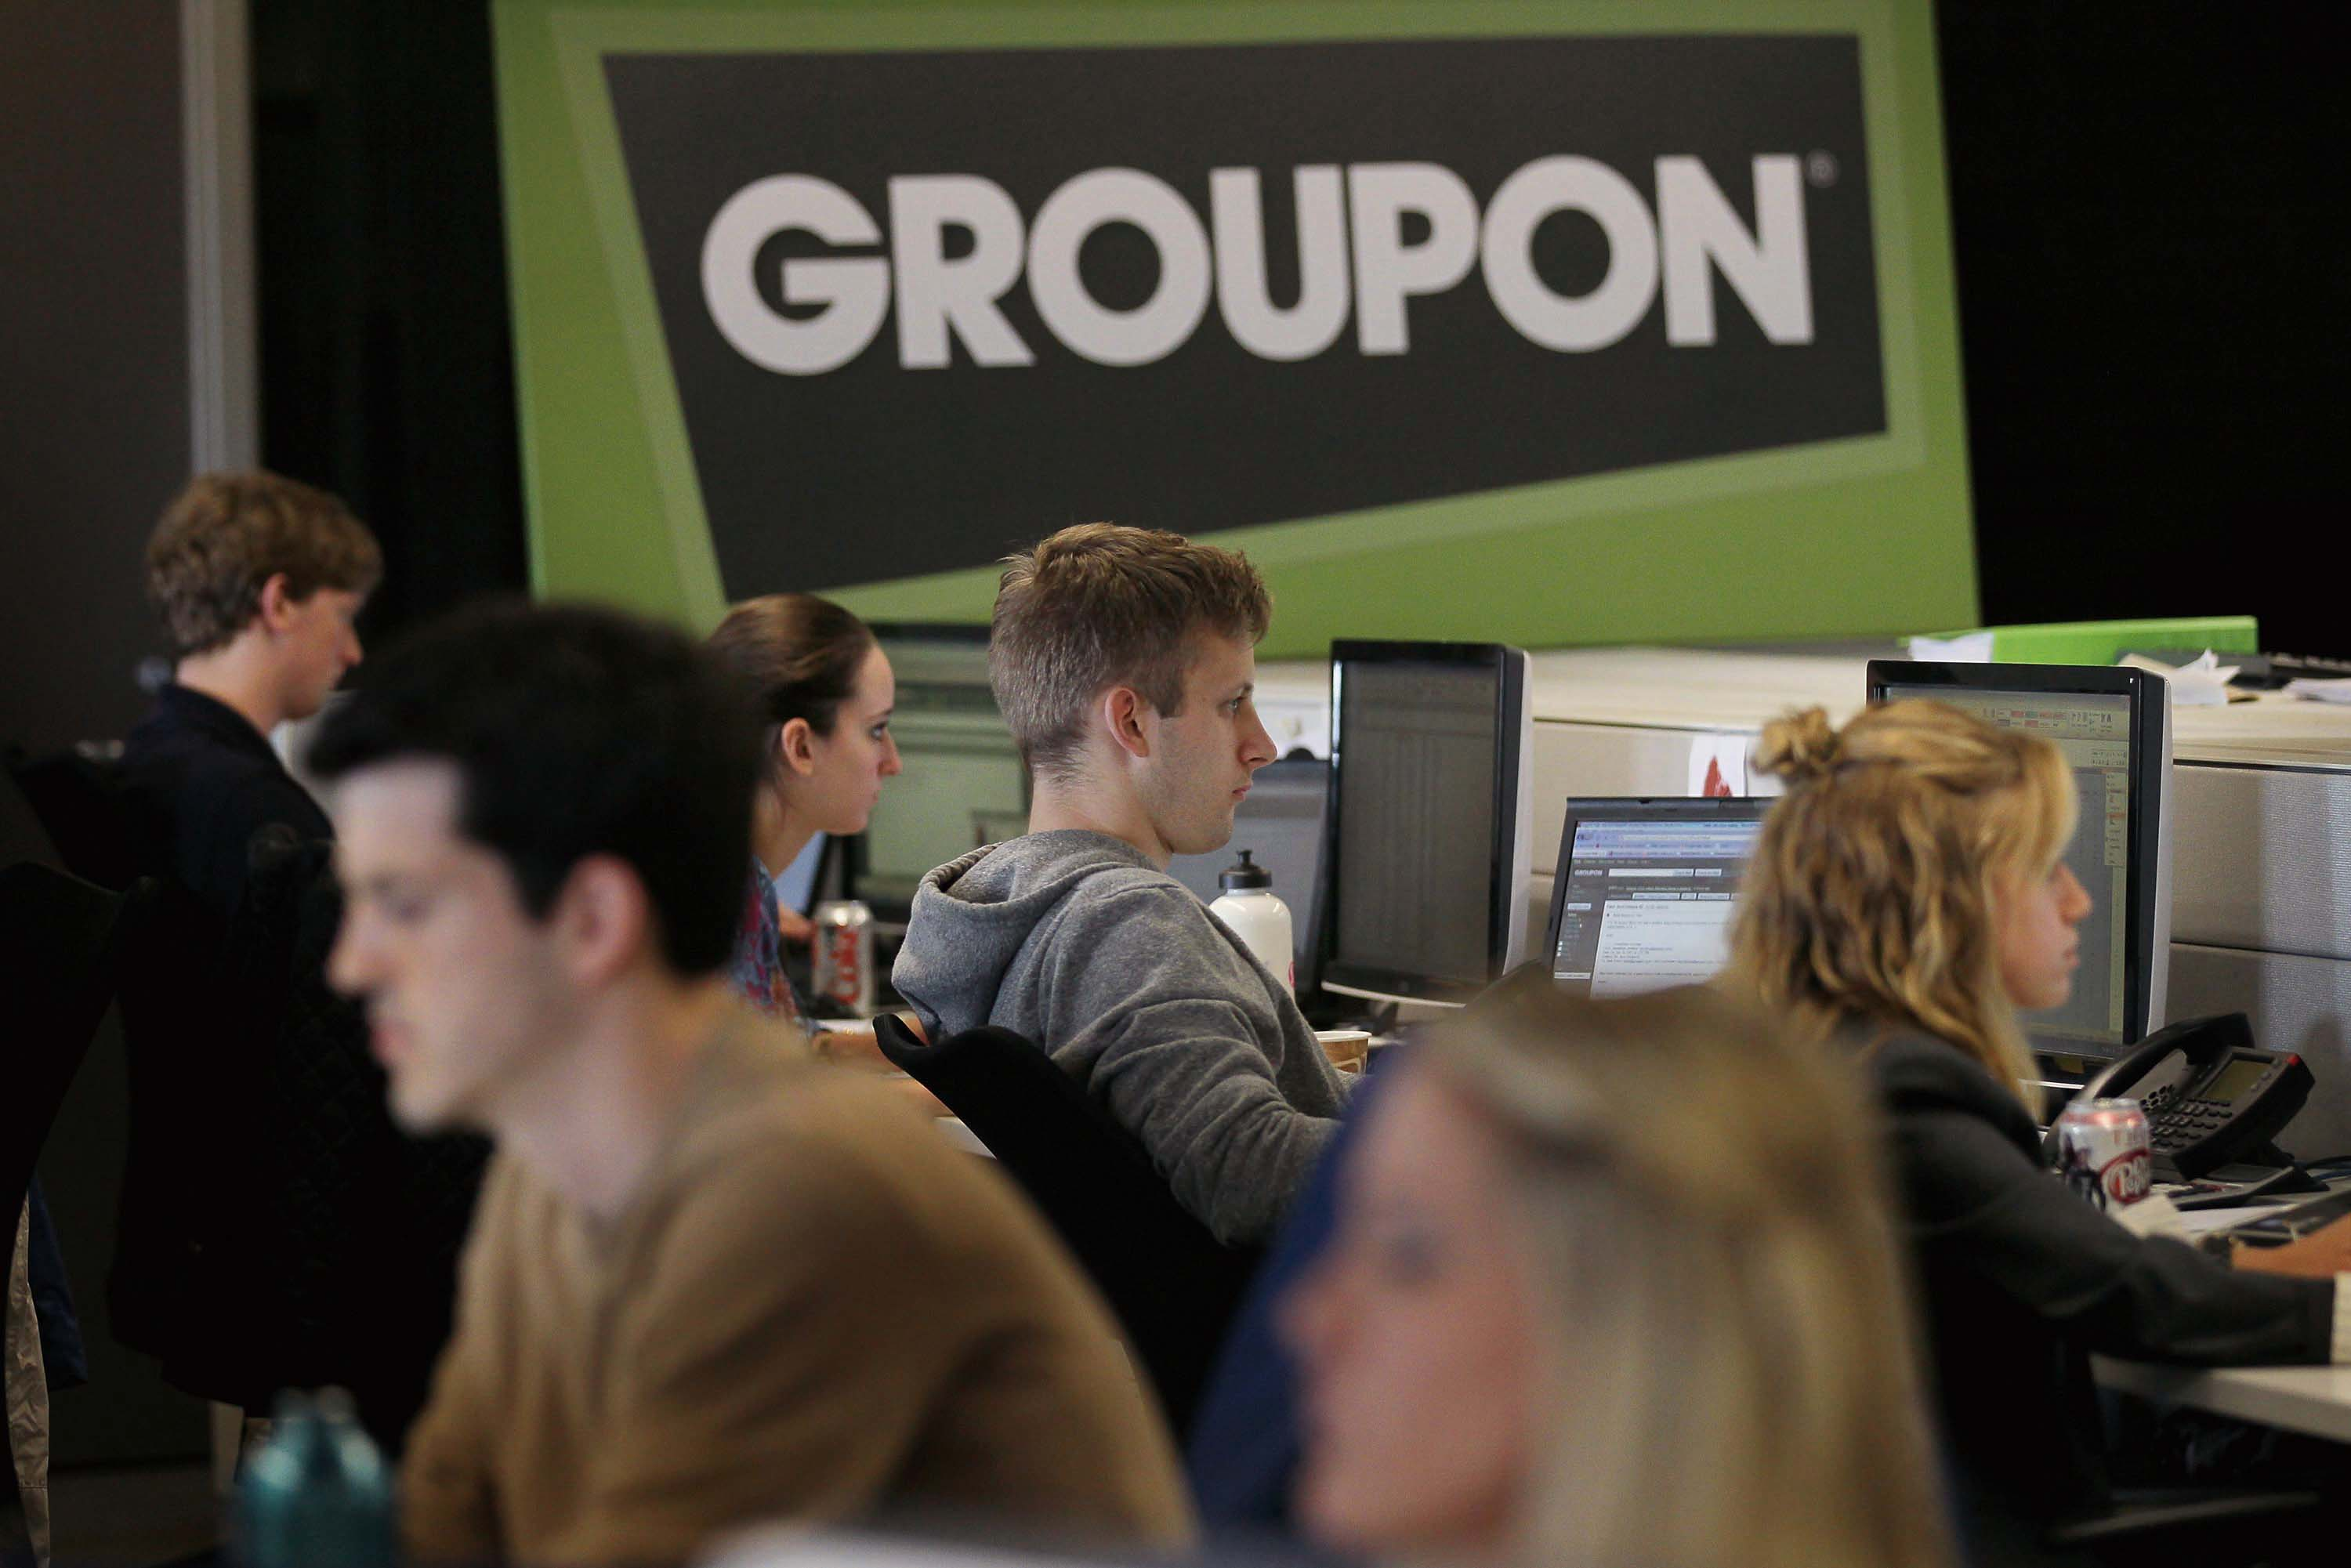 Workers work on projects at Groupons international headquarters on June 10, 2011 in Chicago, Illinois. Groupon is a local e-commerce marketplace that ...